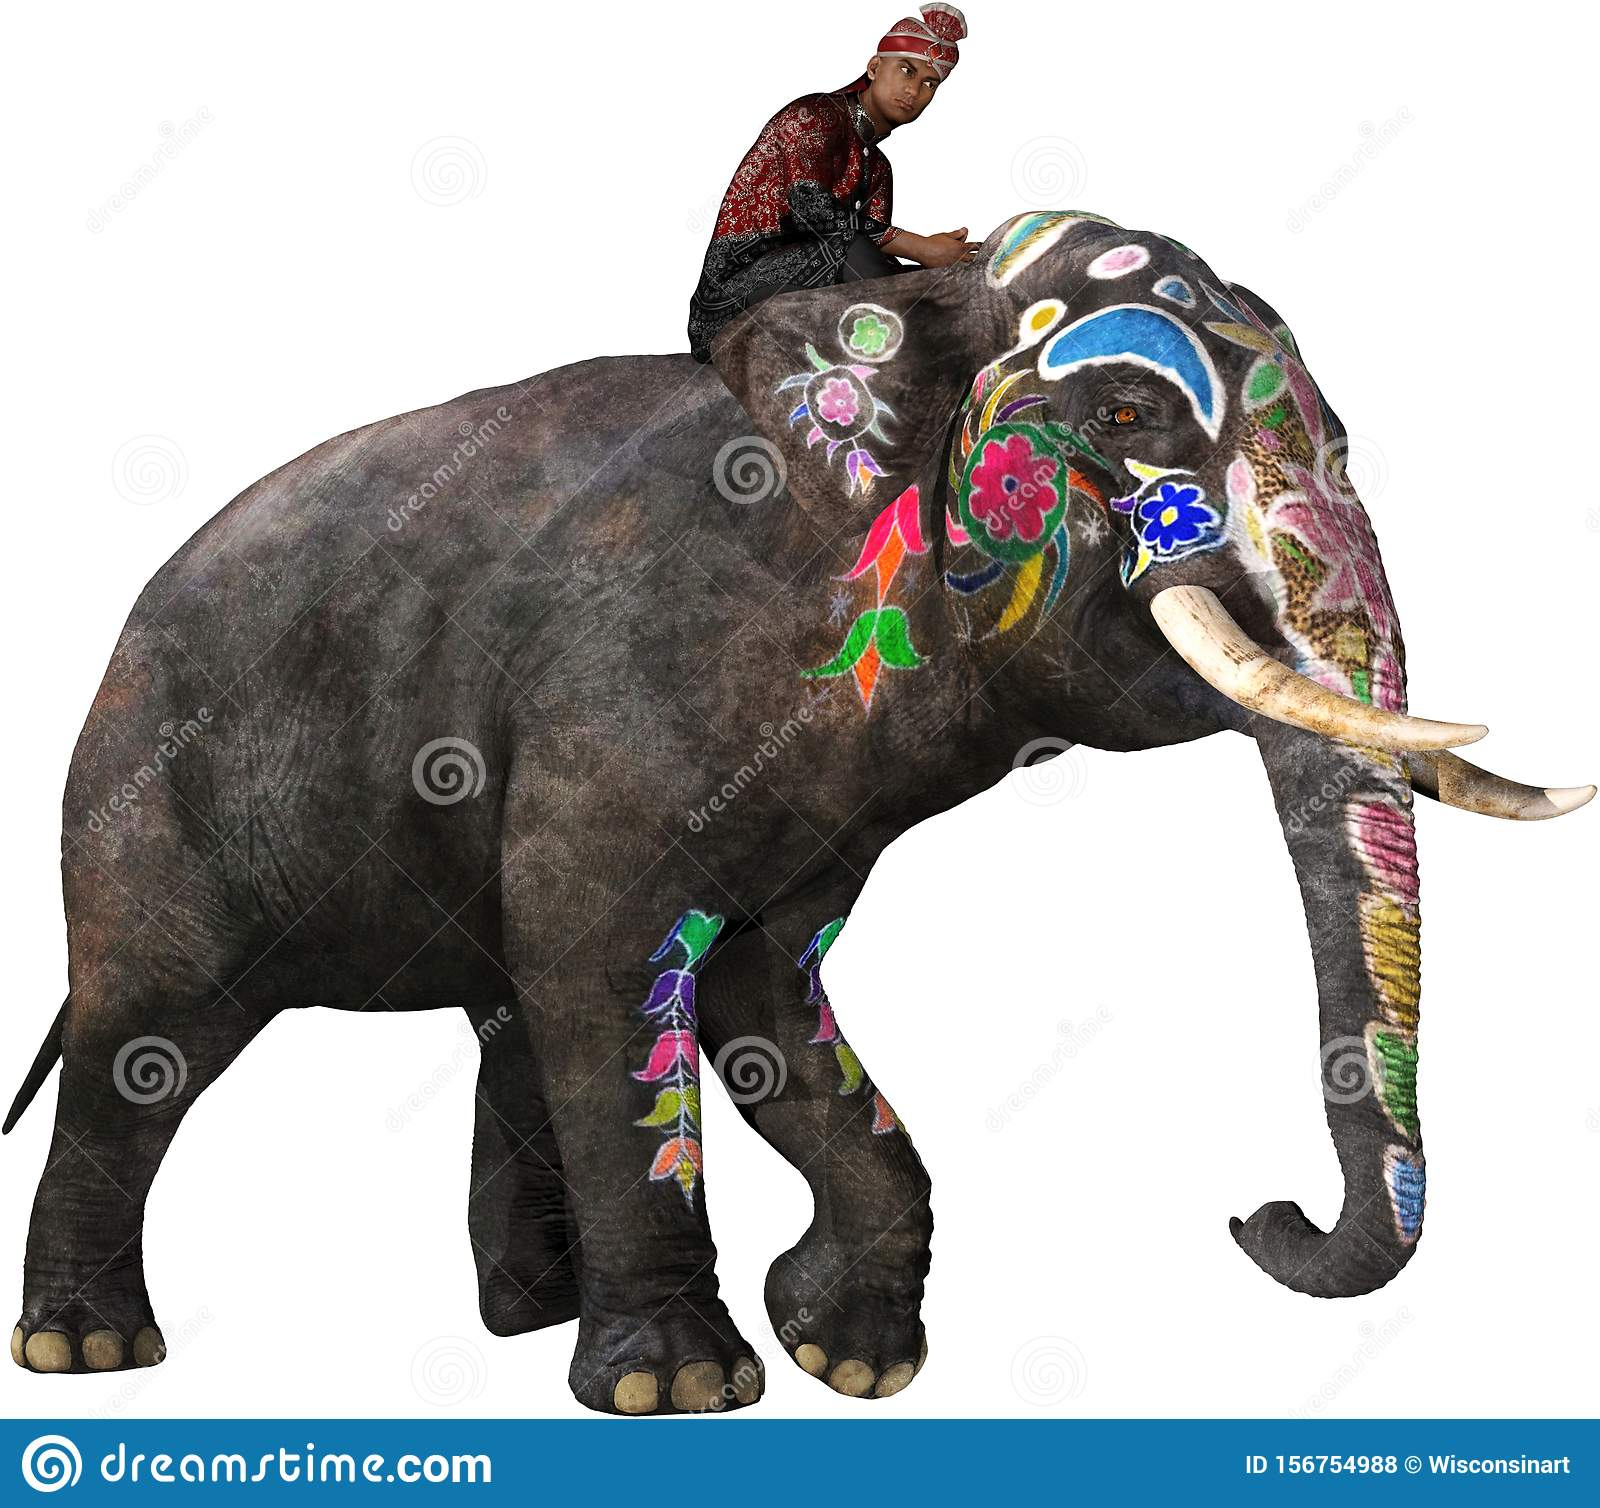 India Painted Indian Elephant Isolated Stock Photo Illustration Of Indian Wisconsinart 156754988 Indian elephant elephant festival, decorative indian elephant, brown elephant illustration, mammal, food png. https www dreamstime com man india asia rides painted indian elephant people animal isolated white png file available india image156754988